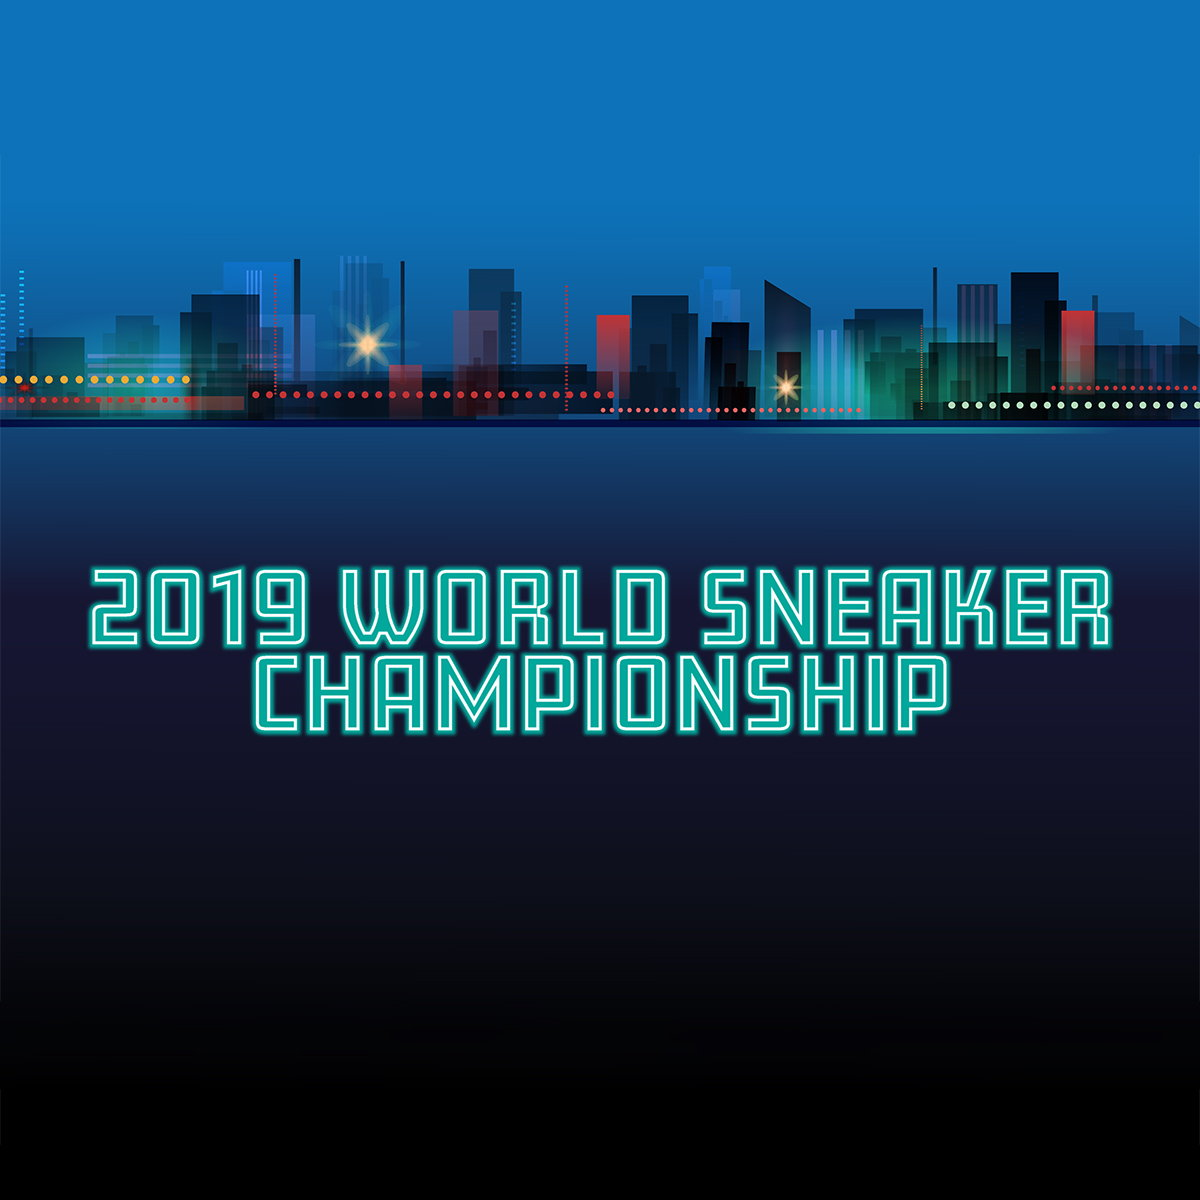 Submissions Open for 2019 World Sneaker Championship